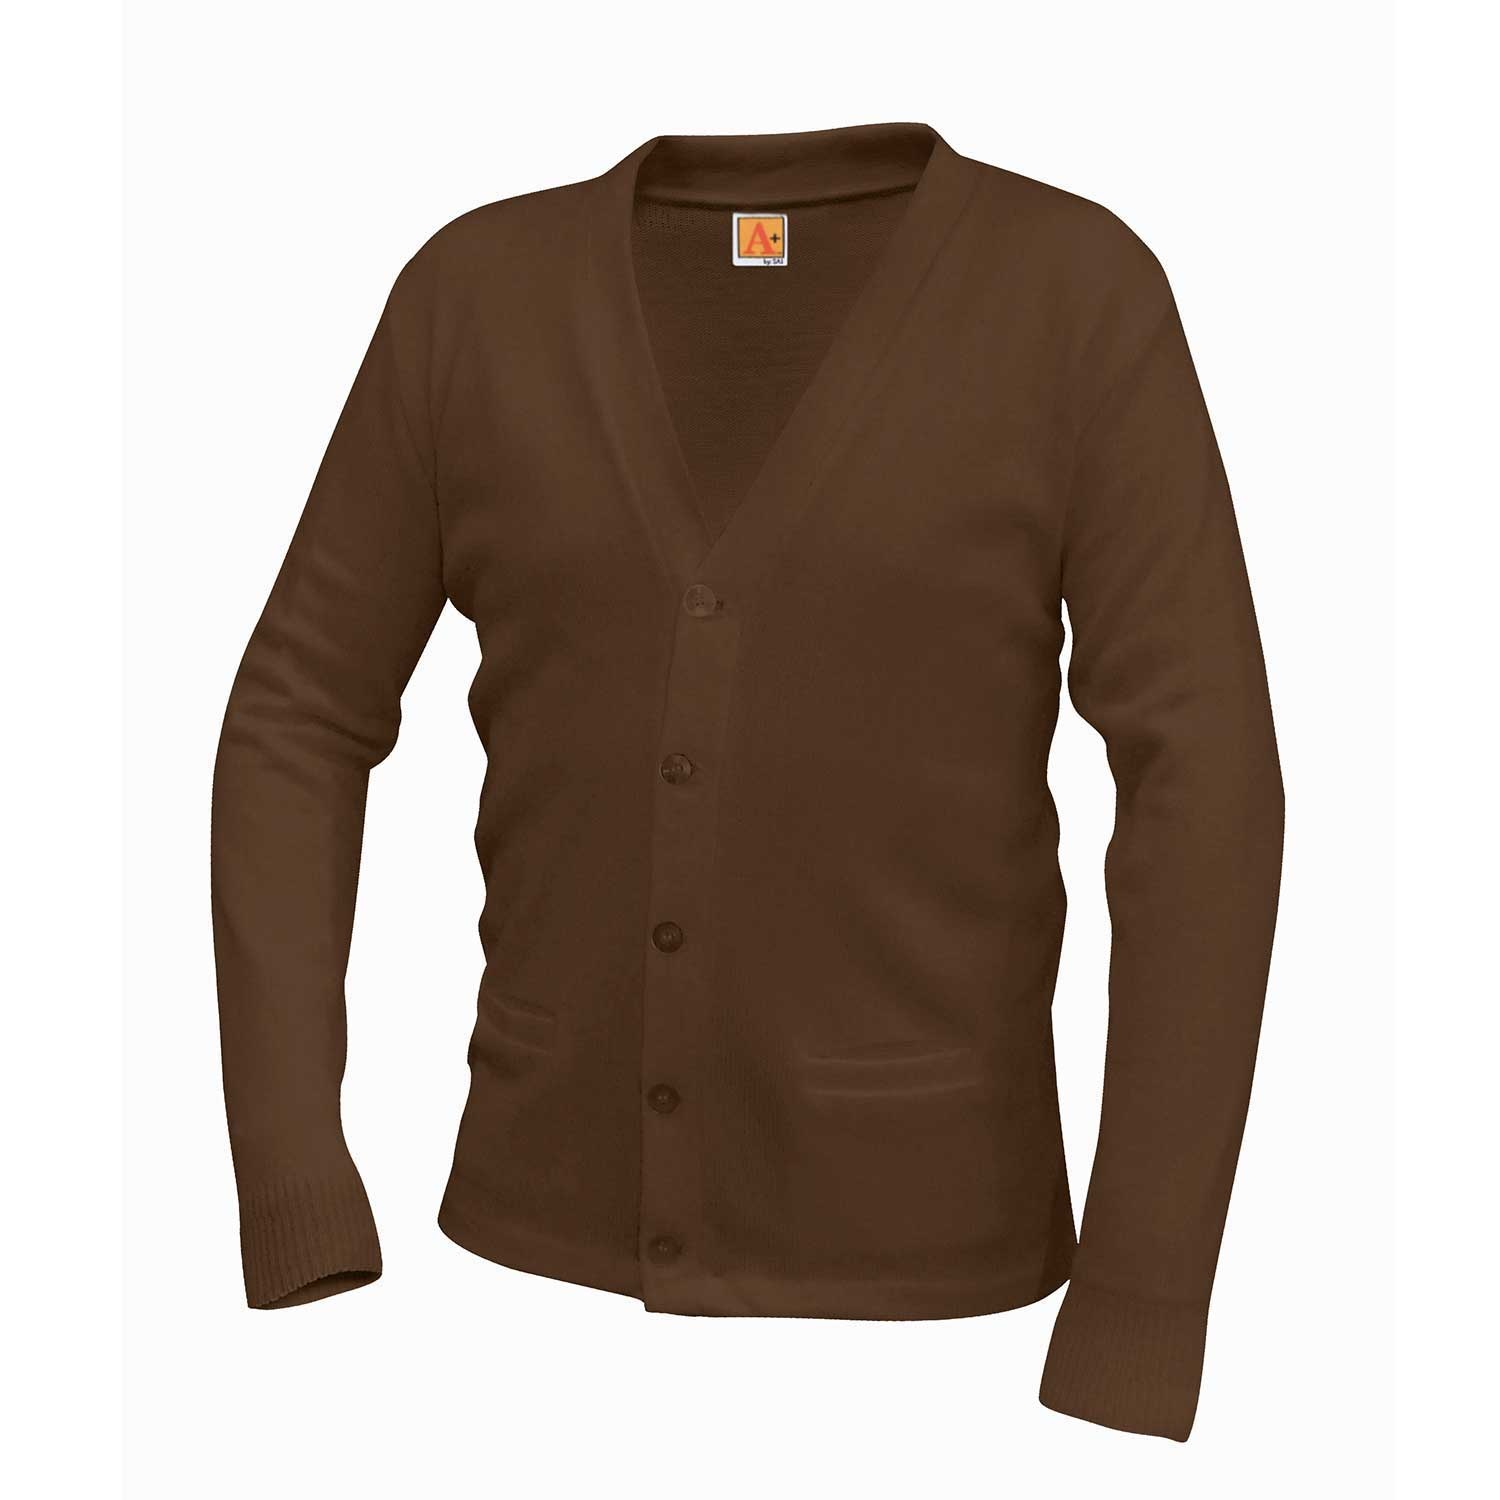 St. Therese Carmelite Cardigan